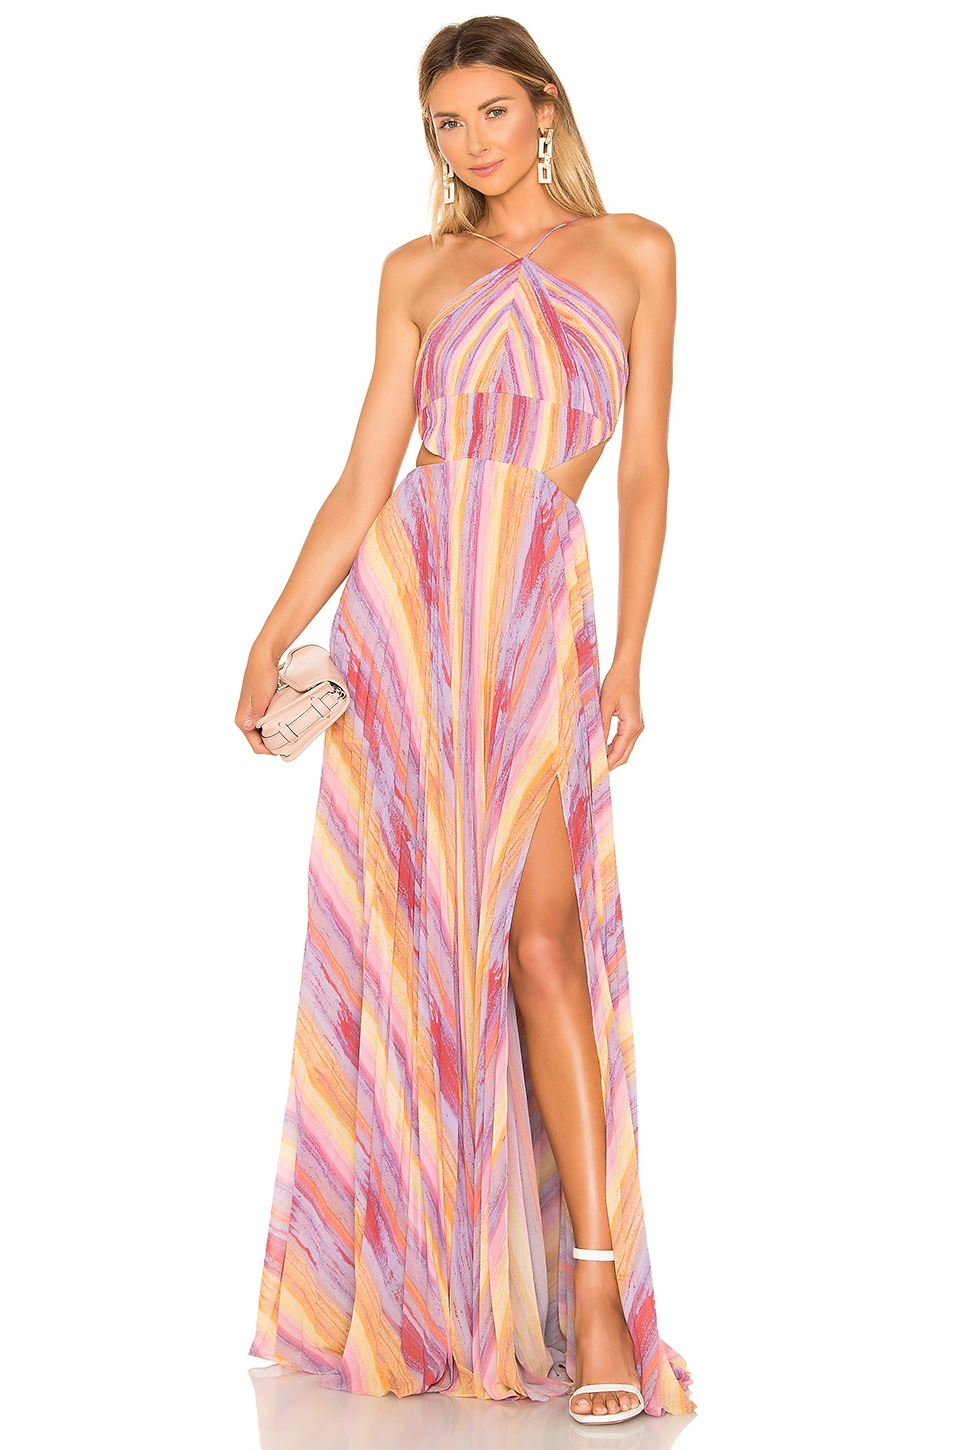 AMUR Janet Gown in Multi